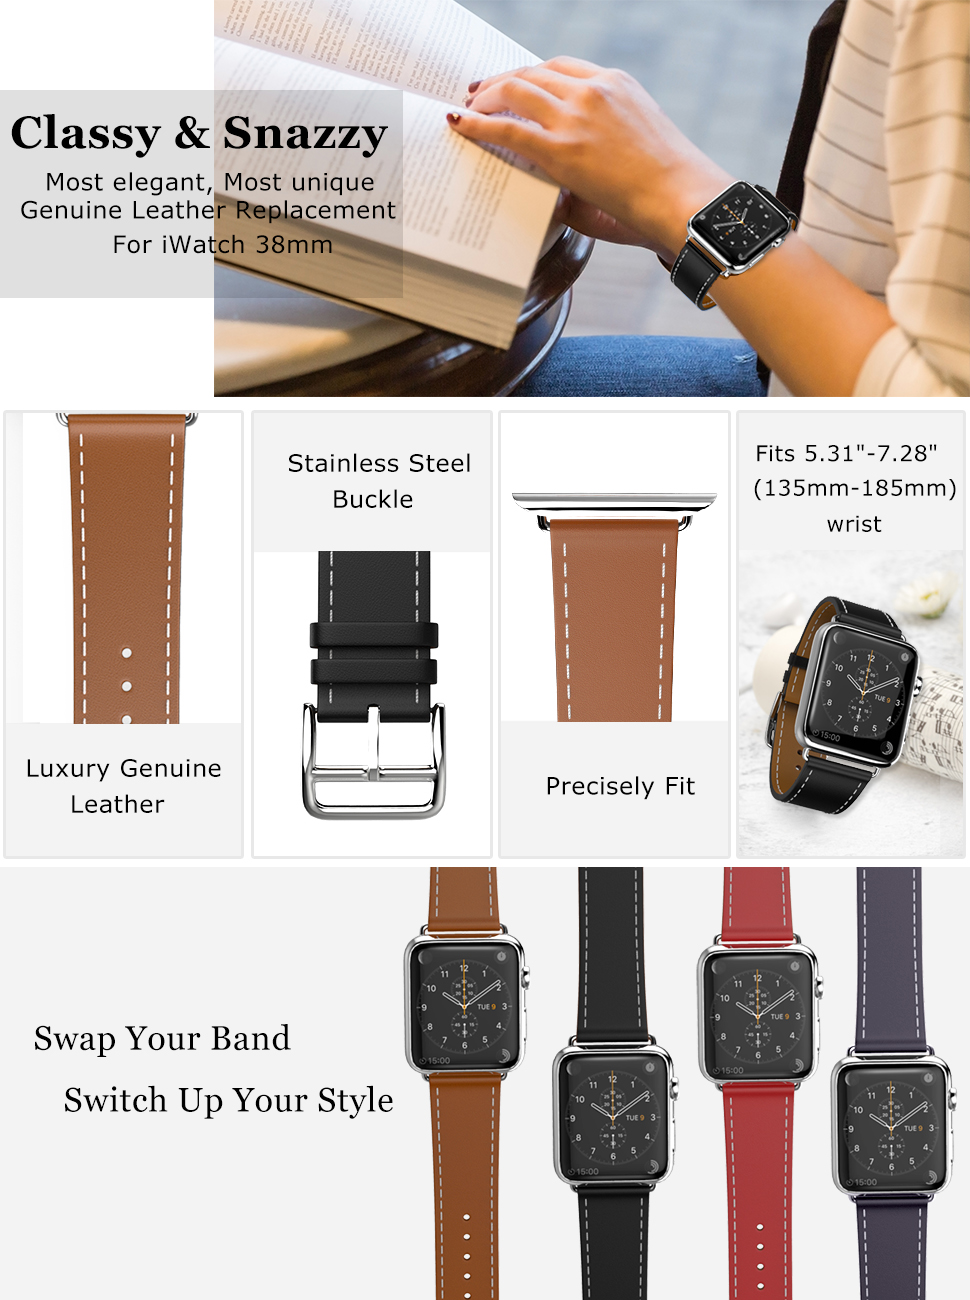 MoKo Compatible Band Replacement for Apple Watch 38mm 40mm Series 4/3/2/1, Luxury Genuine Leather Smart Watch Band Strap Single Tour - Quartz Gray ...